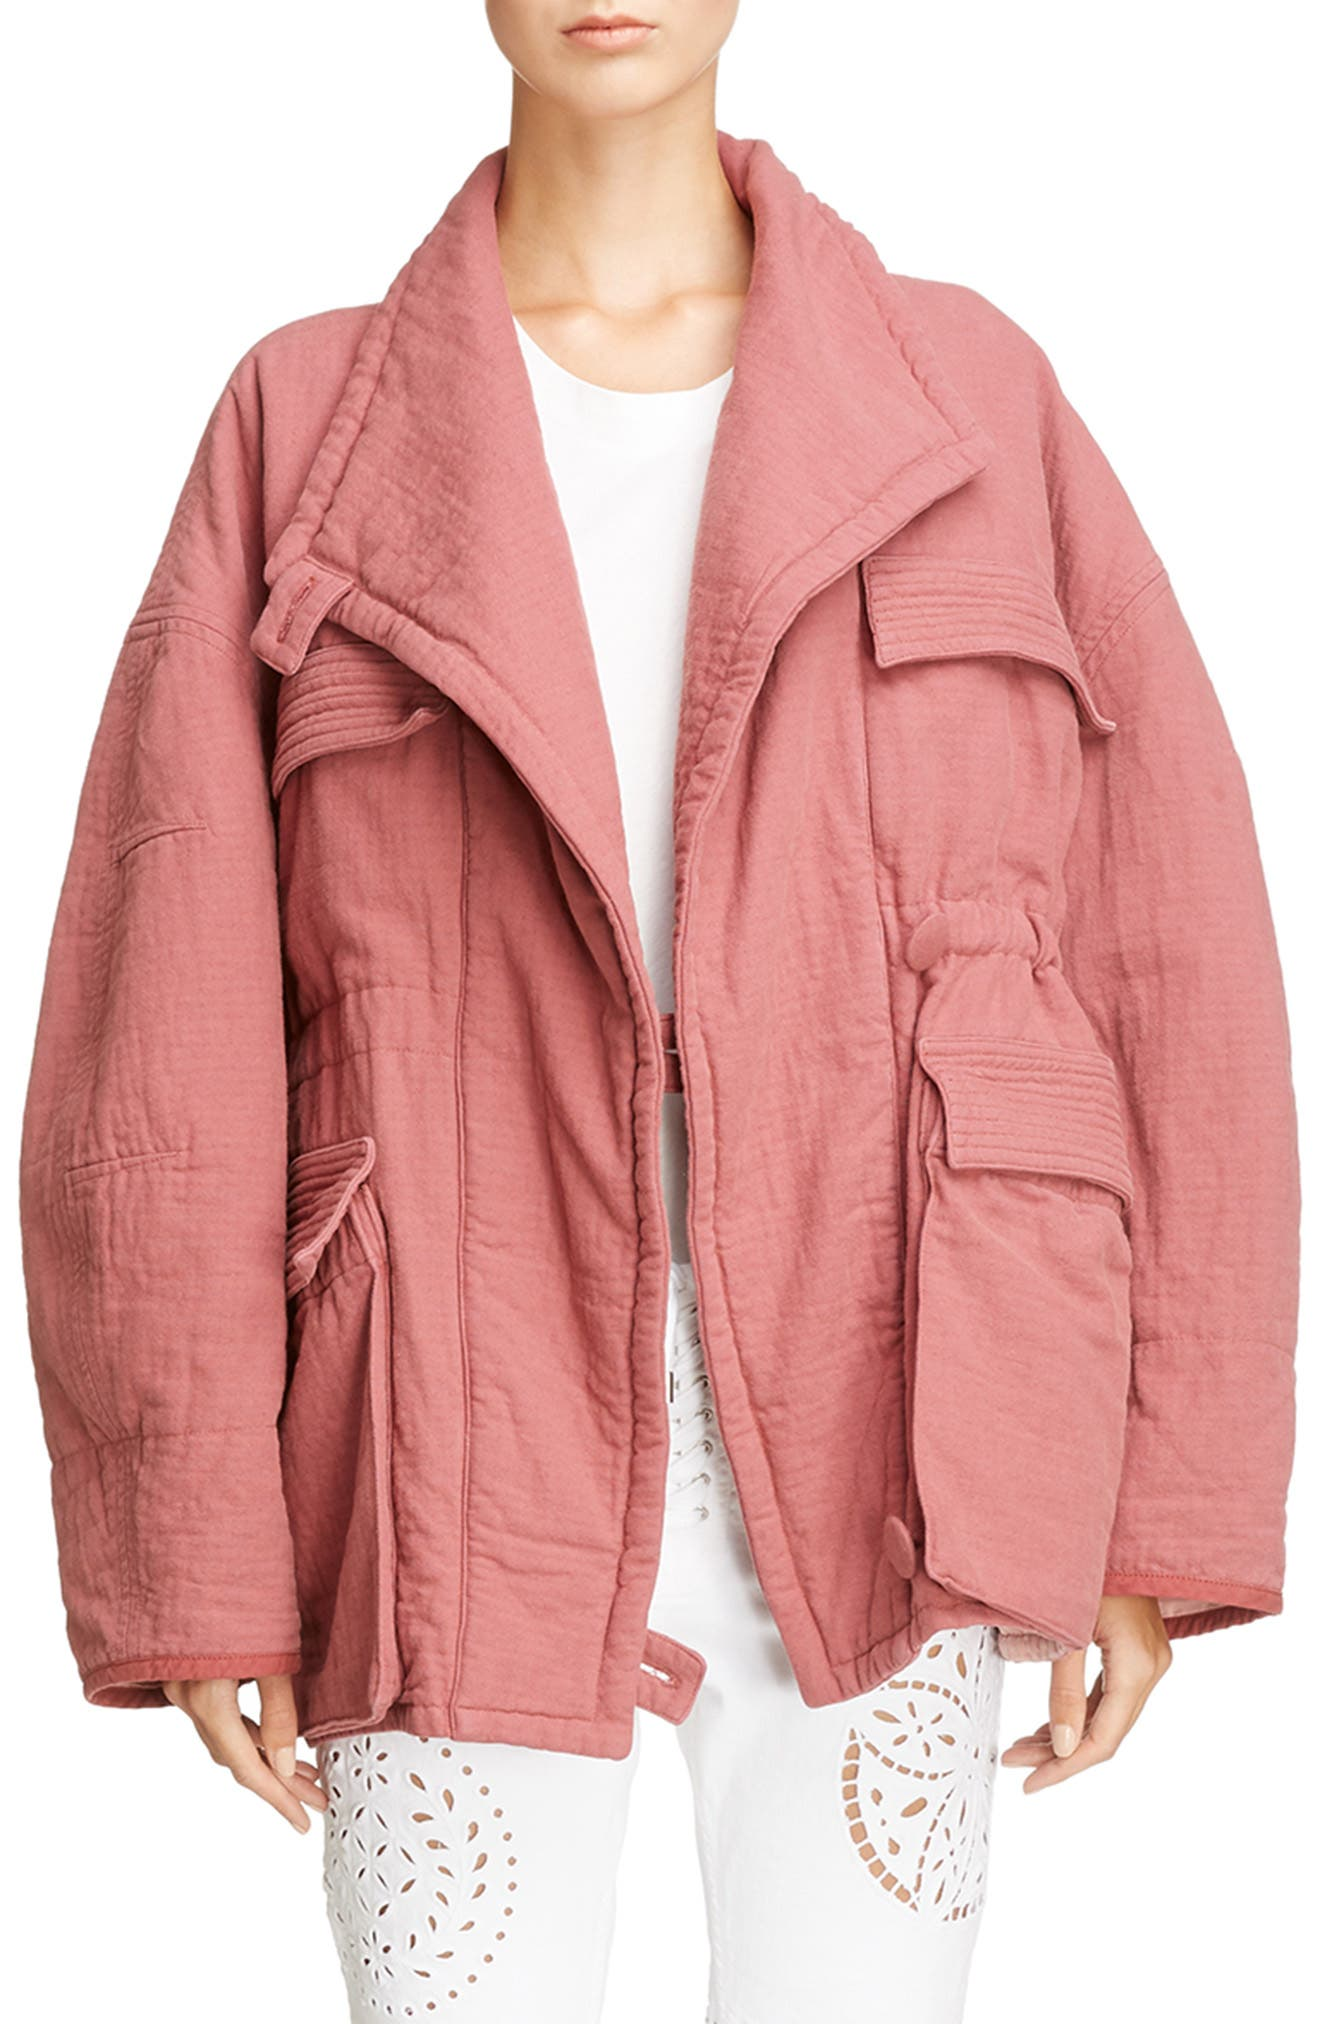 Isabel Marant Oversize Textured Cotton Jacket